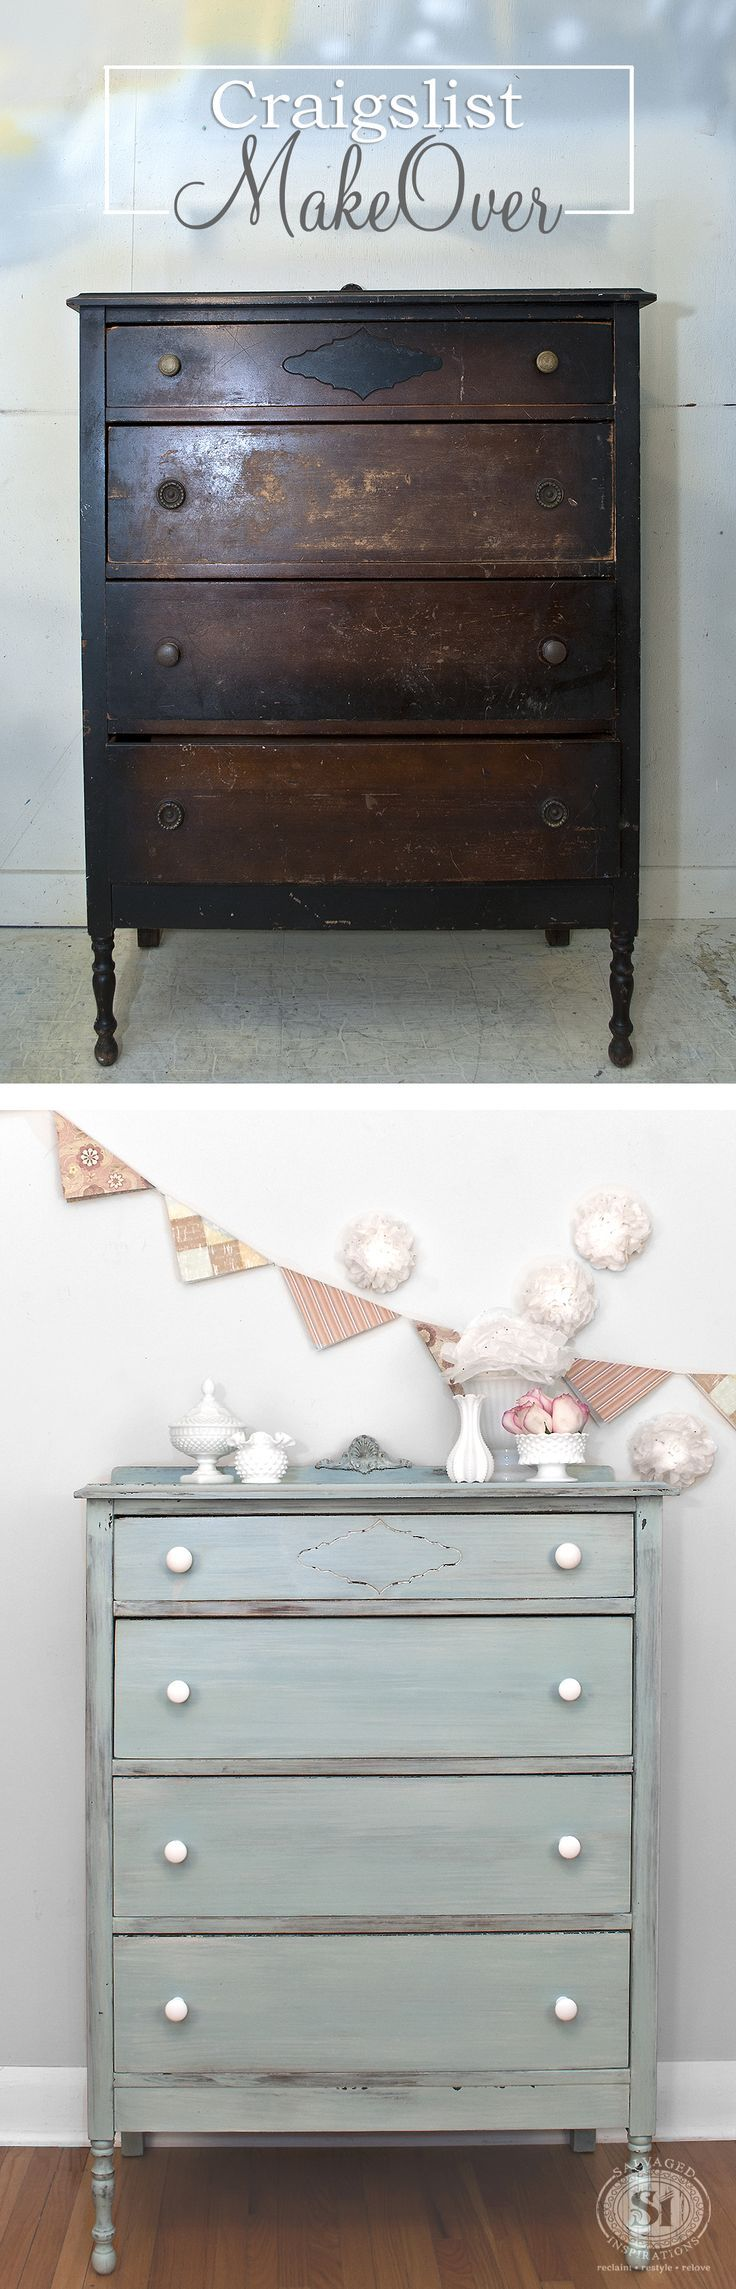 Before & After Craigslist Vintage Dresser Makeover   Layered Milk Paint   Miss Mustard Seed's Eulalie's Sky and Grain Sack   Salvaged Inspirations